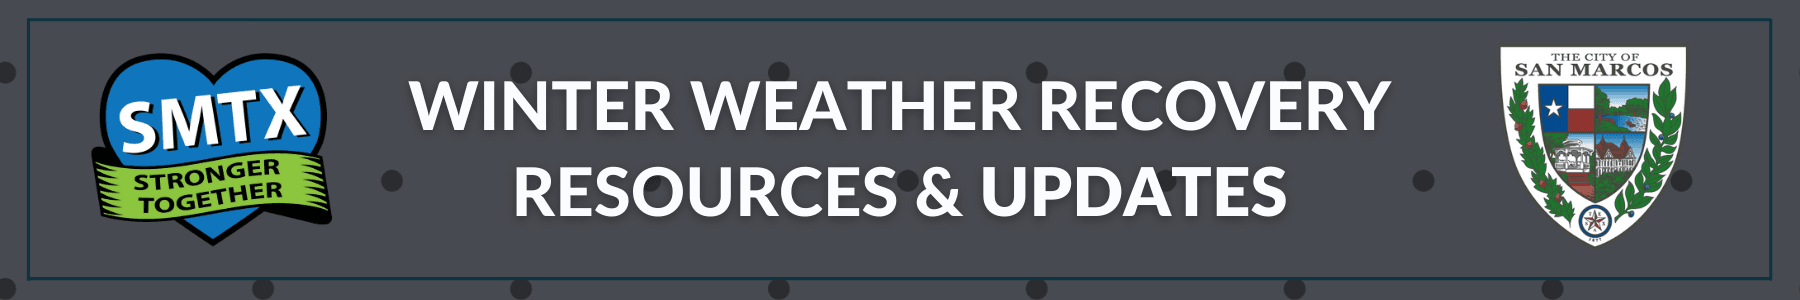 WINTER WEATHER RECOVERY UPDATES